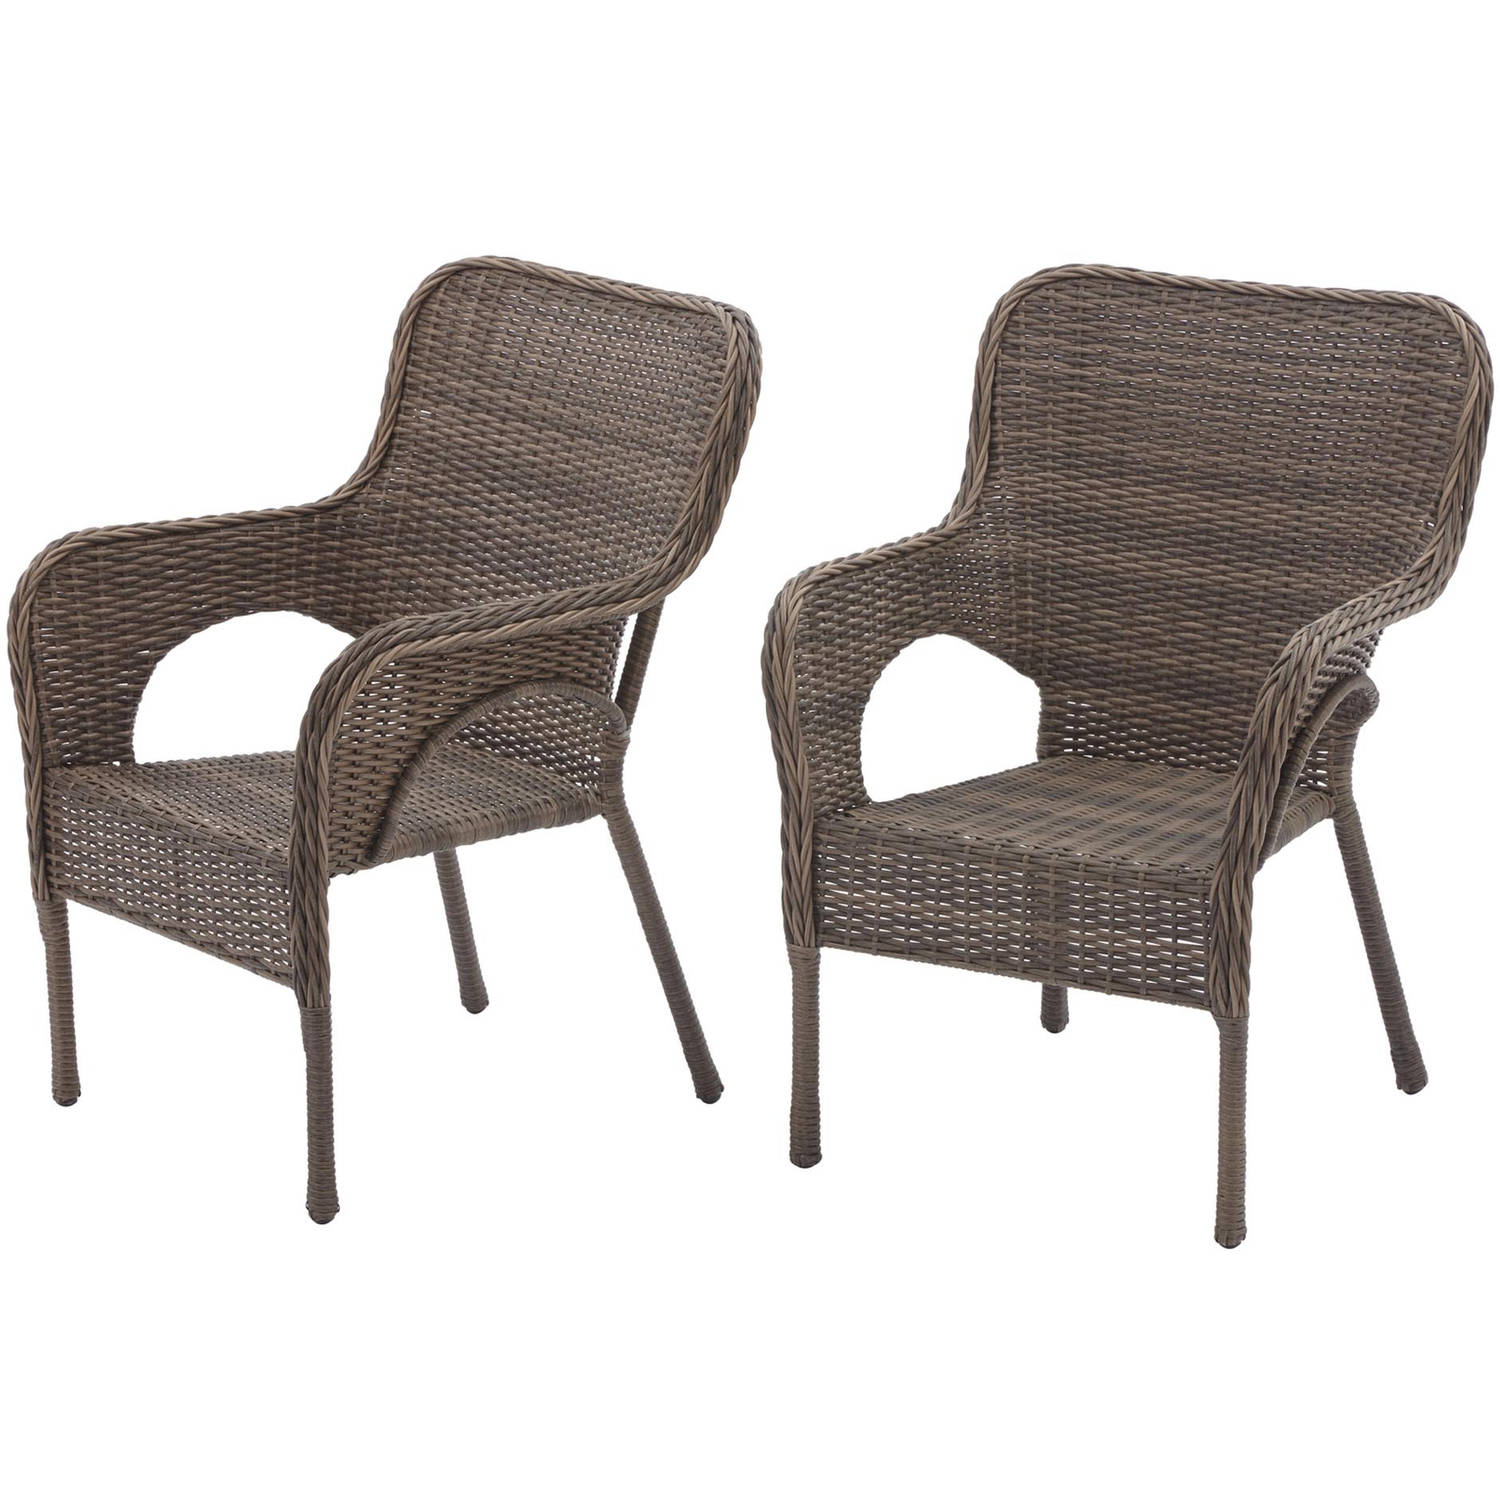 better homes and gardens camrose farmhouse mix and match stacking wicker chairs set of 2 walmart com